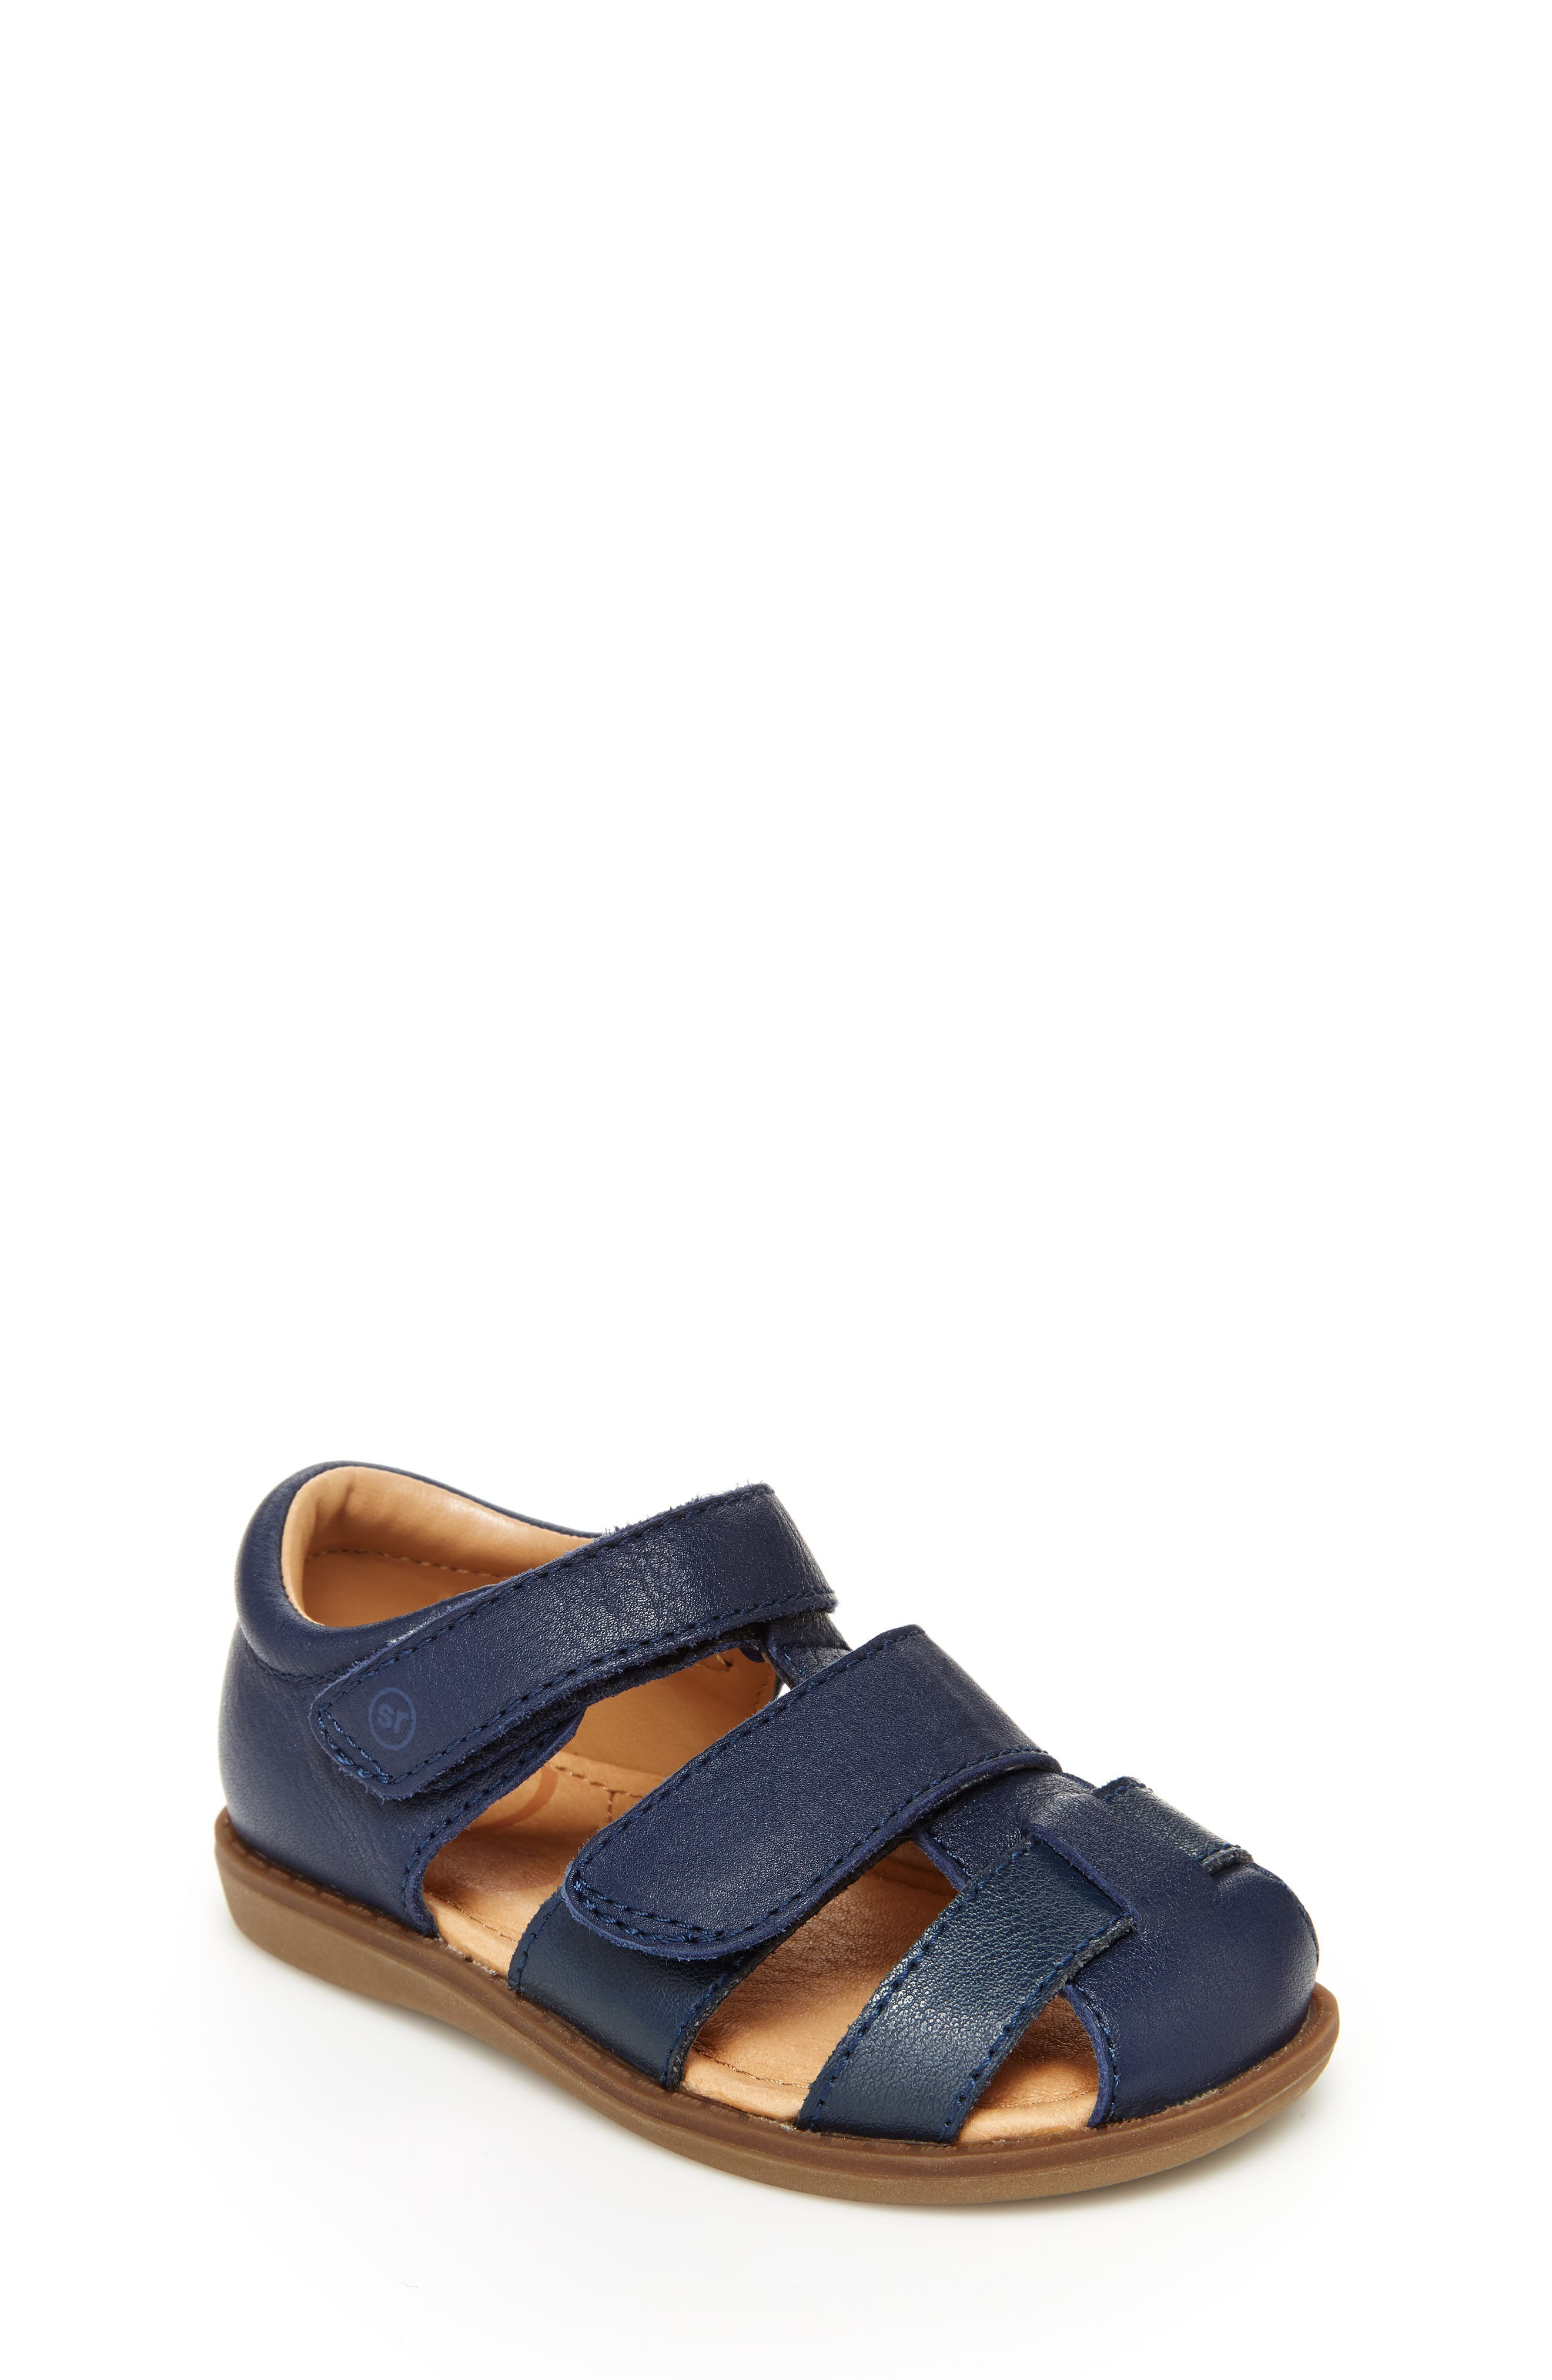 Smooth leather brings irresistible charm to a fisherman sandal featuring a cushy memory foam footbed and adjustable hook-and-loop strap. Style Name: Stride Rite Emerson Sandal (Baby, Walker & Toddler). Style Number: 5854256. Available in stores.